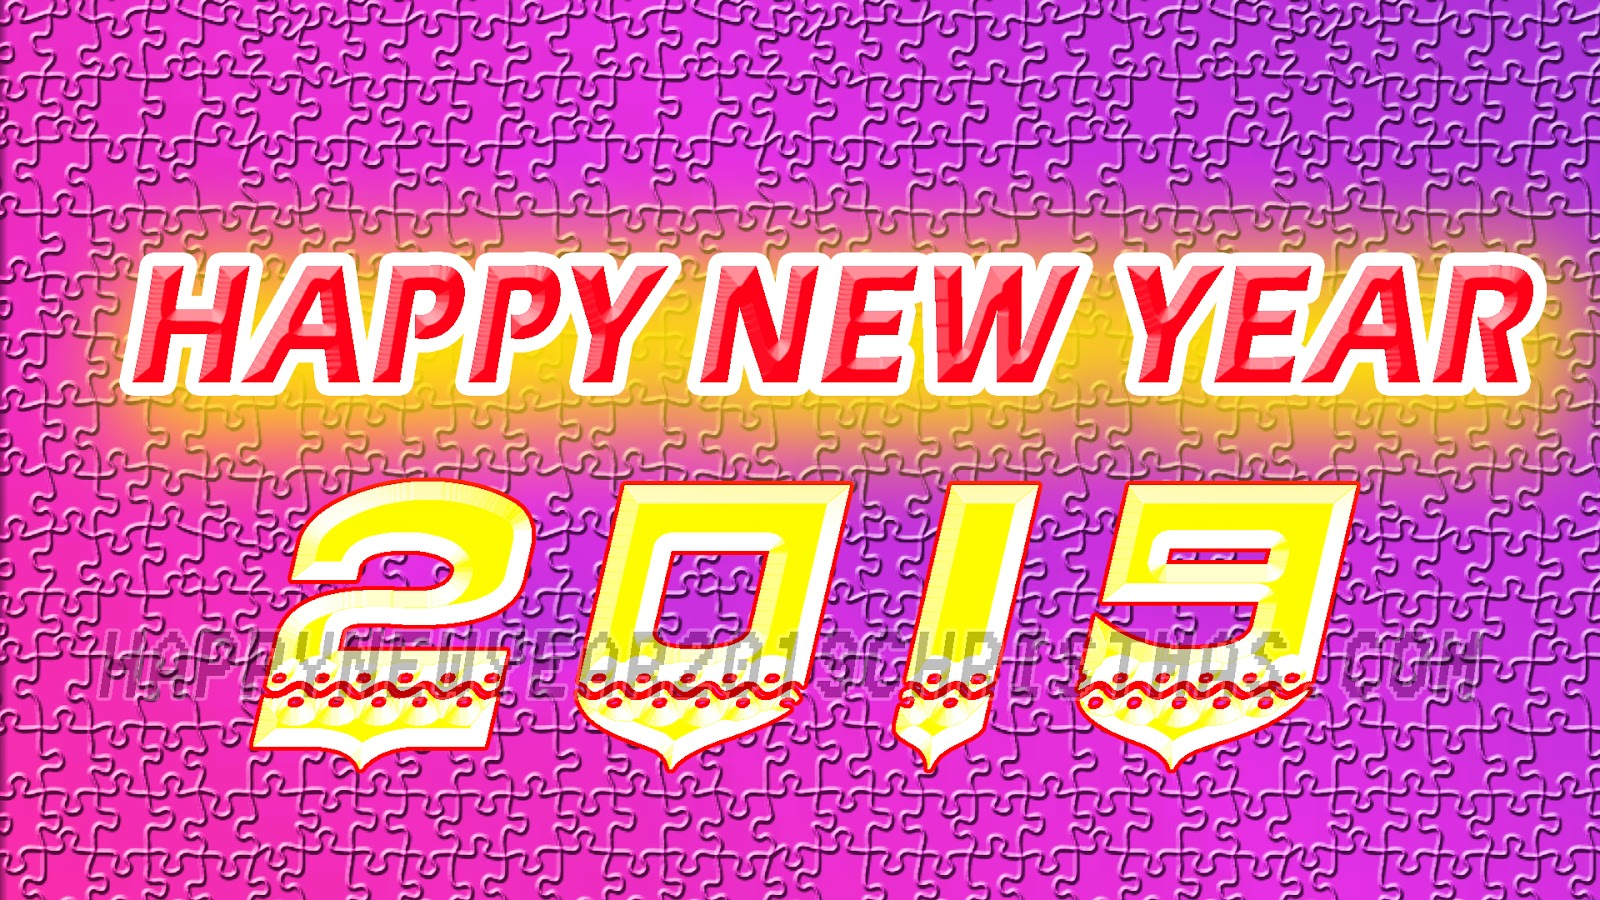 Happy New Year 2019 Greetings Sms Happy New Year 2019 Images